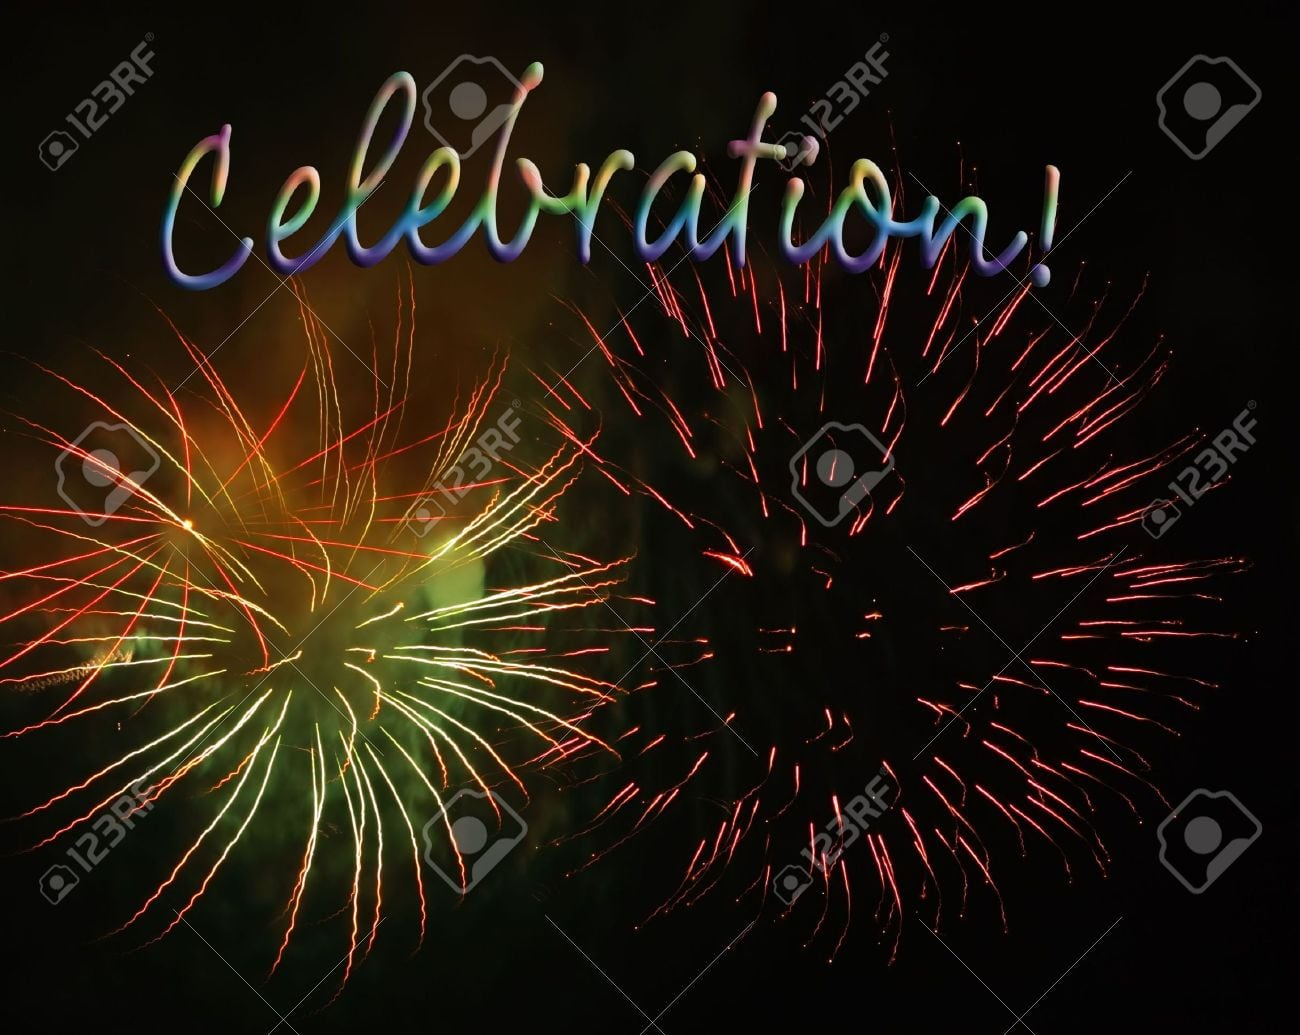 Fireworks Display With Celebration Text, Good For Party